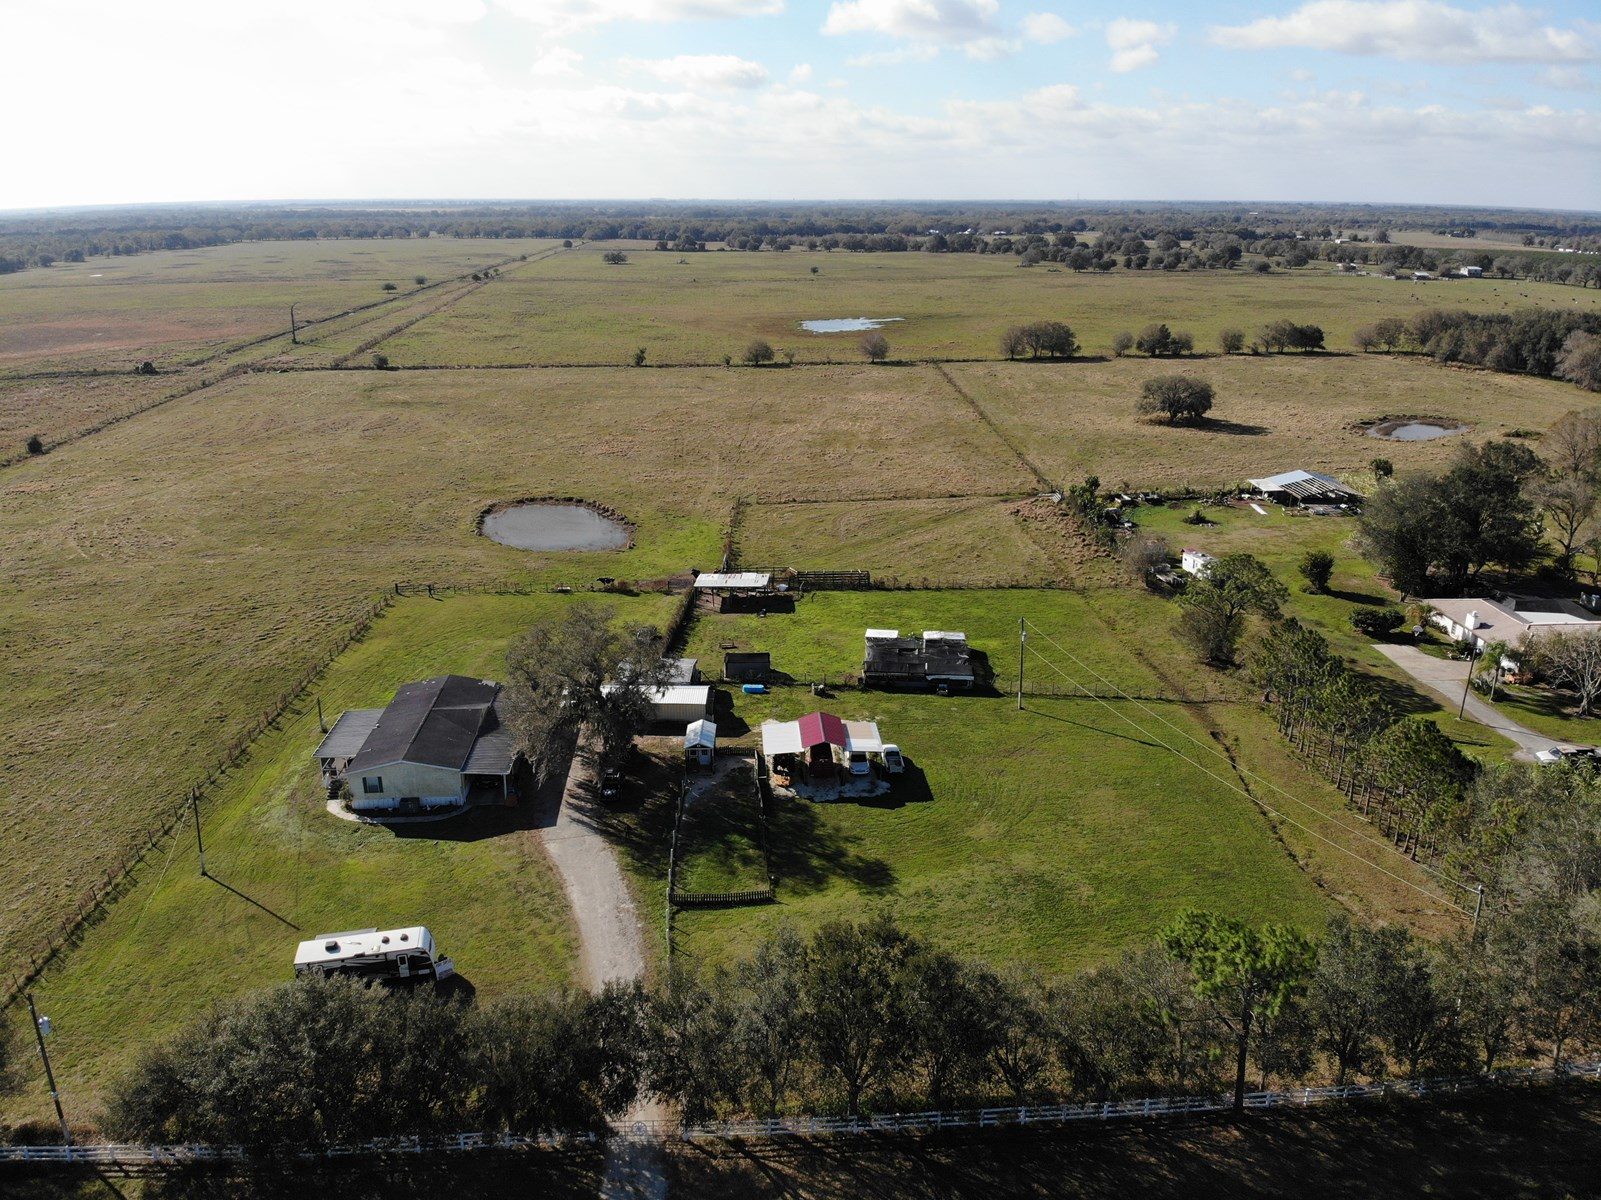 26+ Acre Ranch in Arcadia, Florida with 3 br 2 ba home!